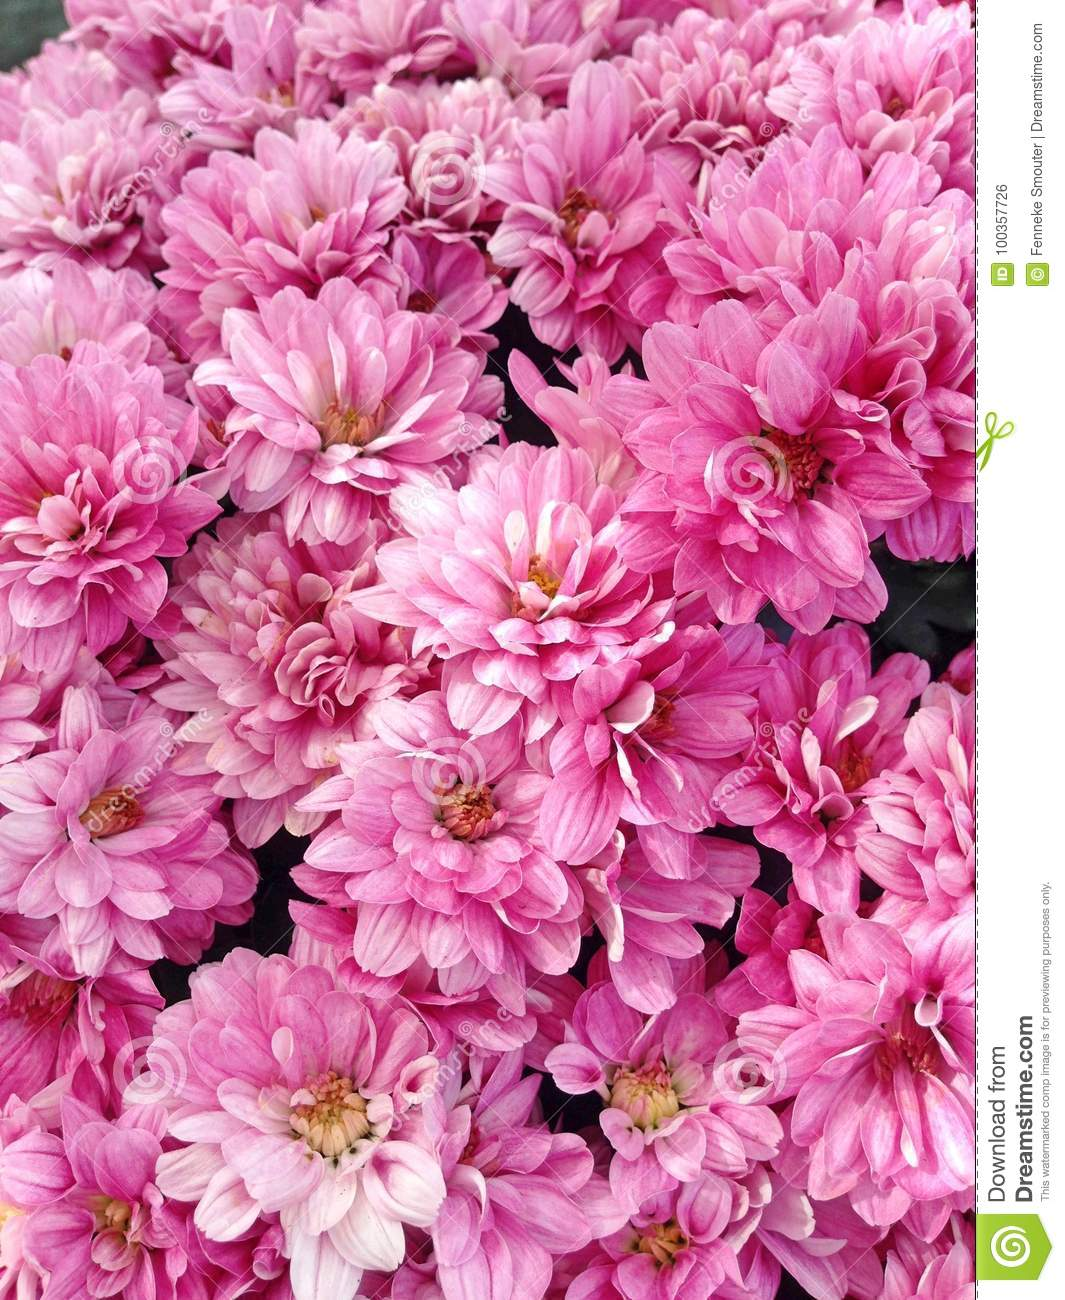 Lovely Pink Flowers From A Spherical Chrysant Stock Photo Image Of